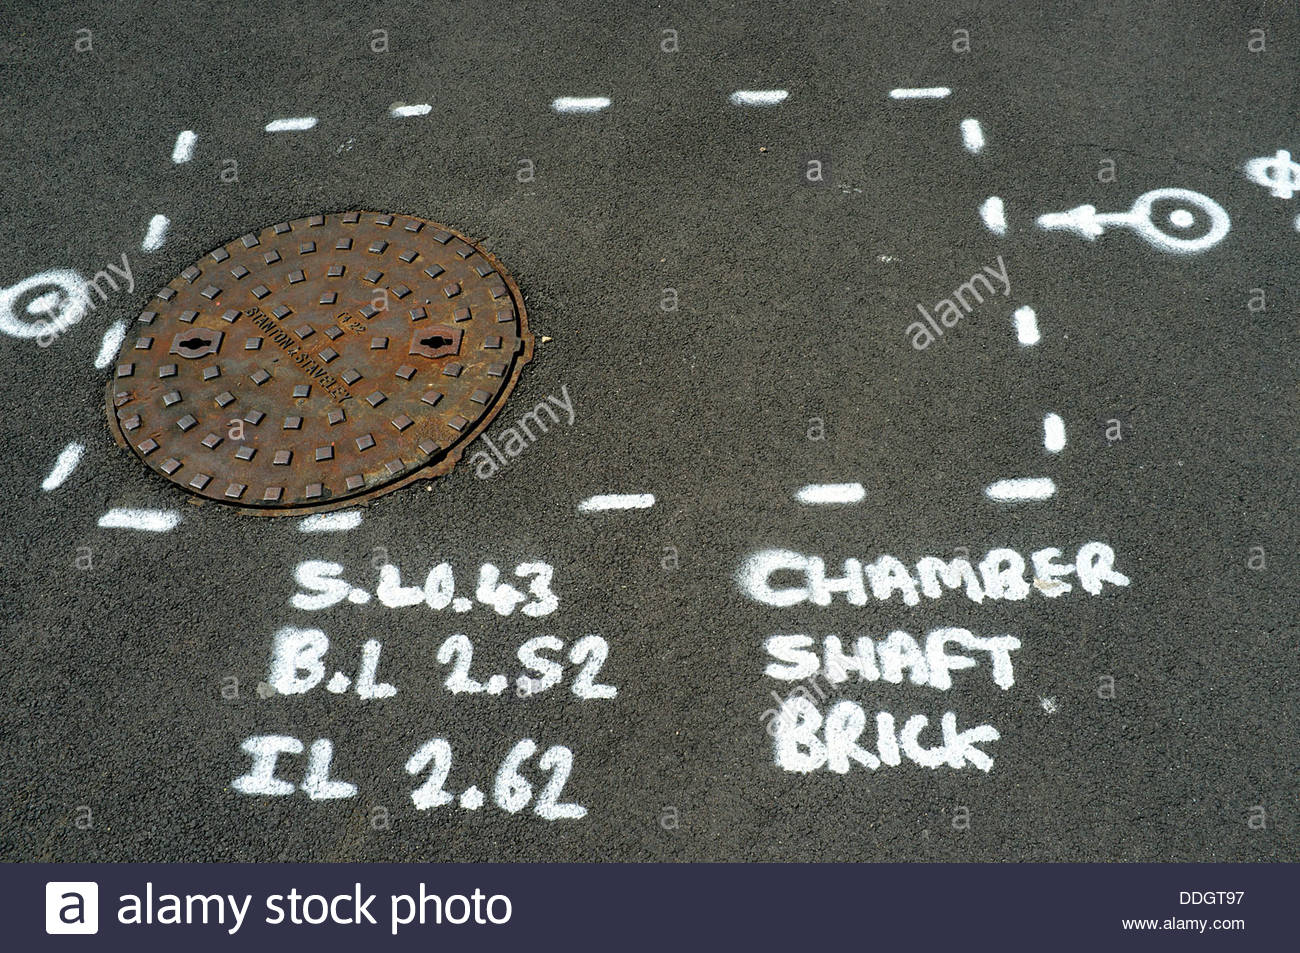 Surveyor's/Engineer's painted markings giving details about the chamber under a railway station platform, - Stock Image